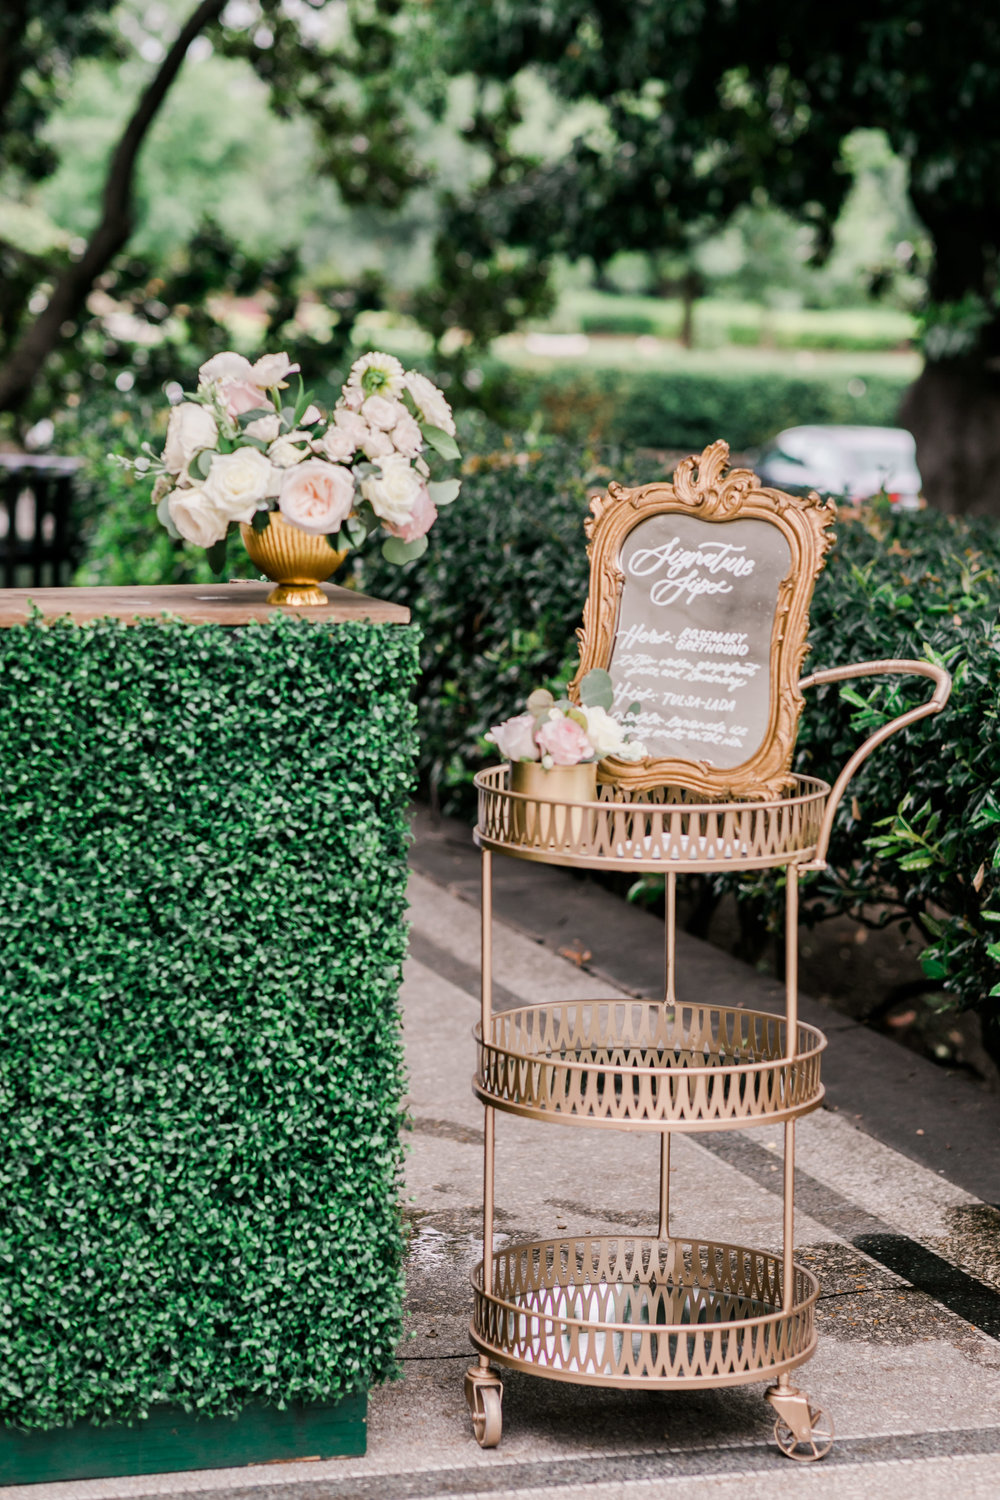 The Mansion at Woodward Park Tulsa Oklahoma Wedding_Valorie Darling Photography-0116.jpg